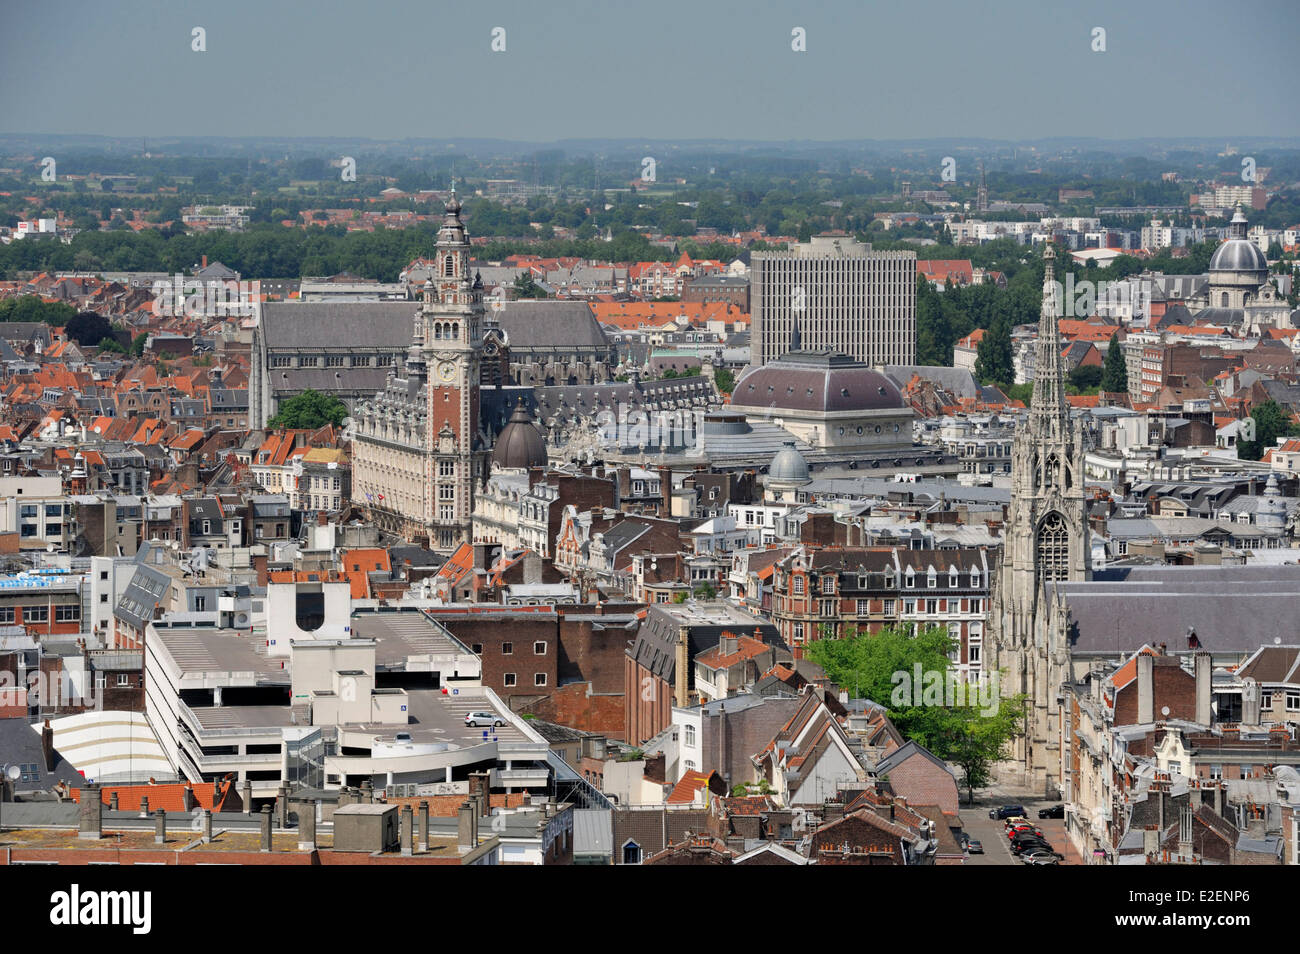 France, Nord, Lille, belfry of the ICC as seen from the belfry of the town hall - Stock Image